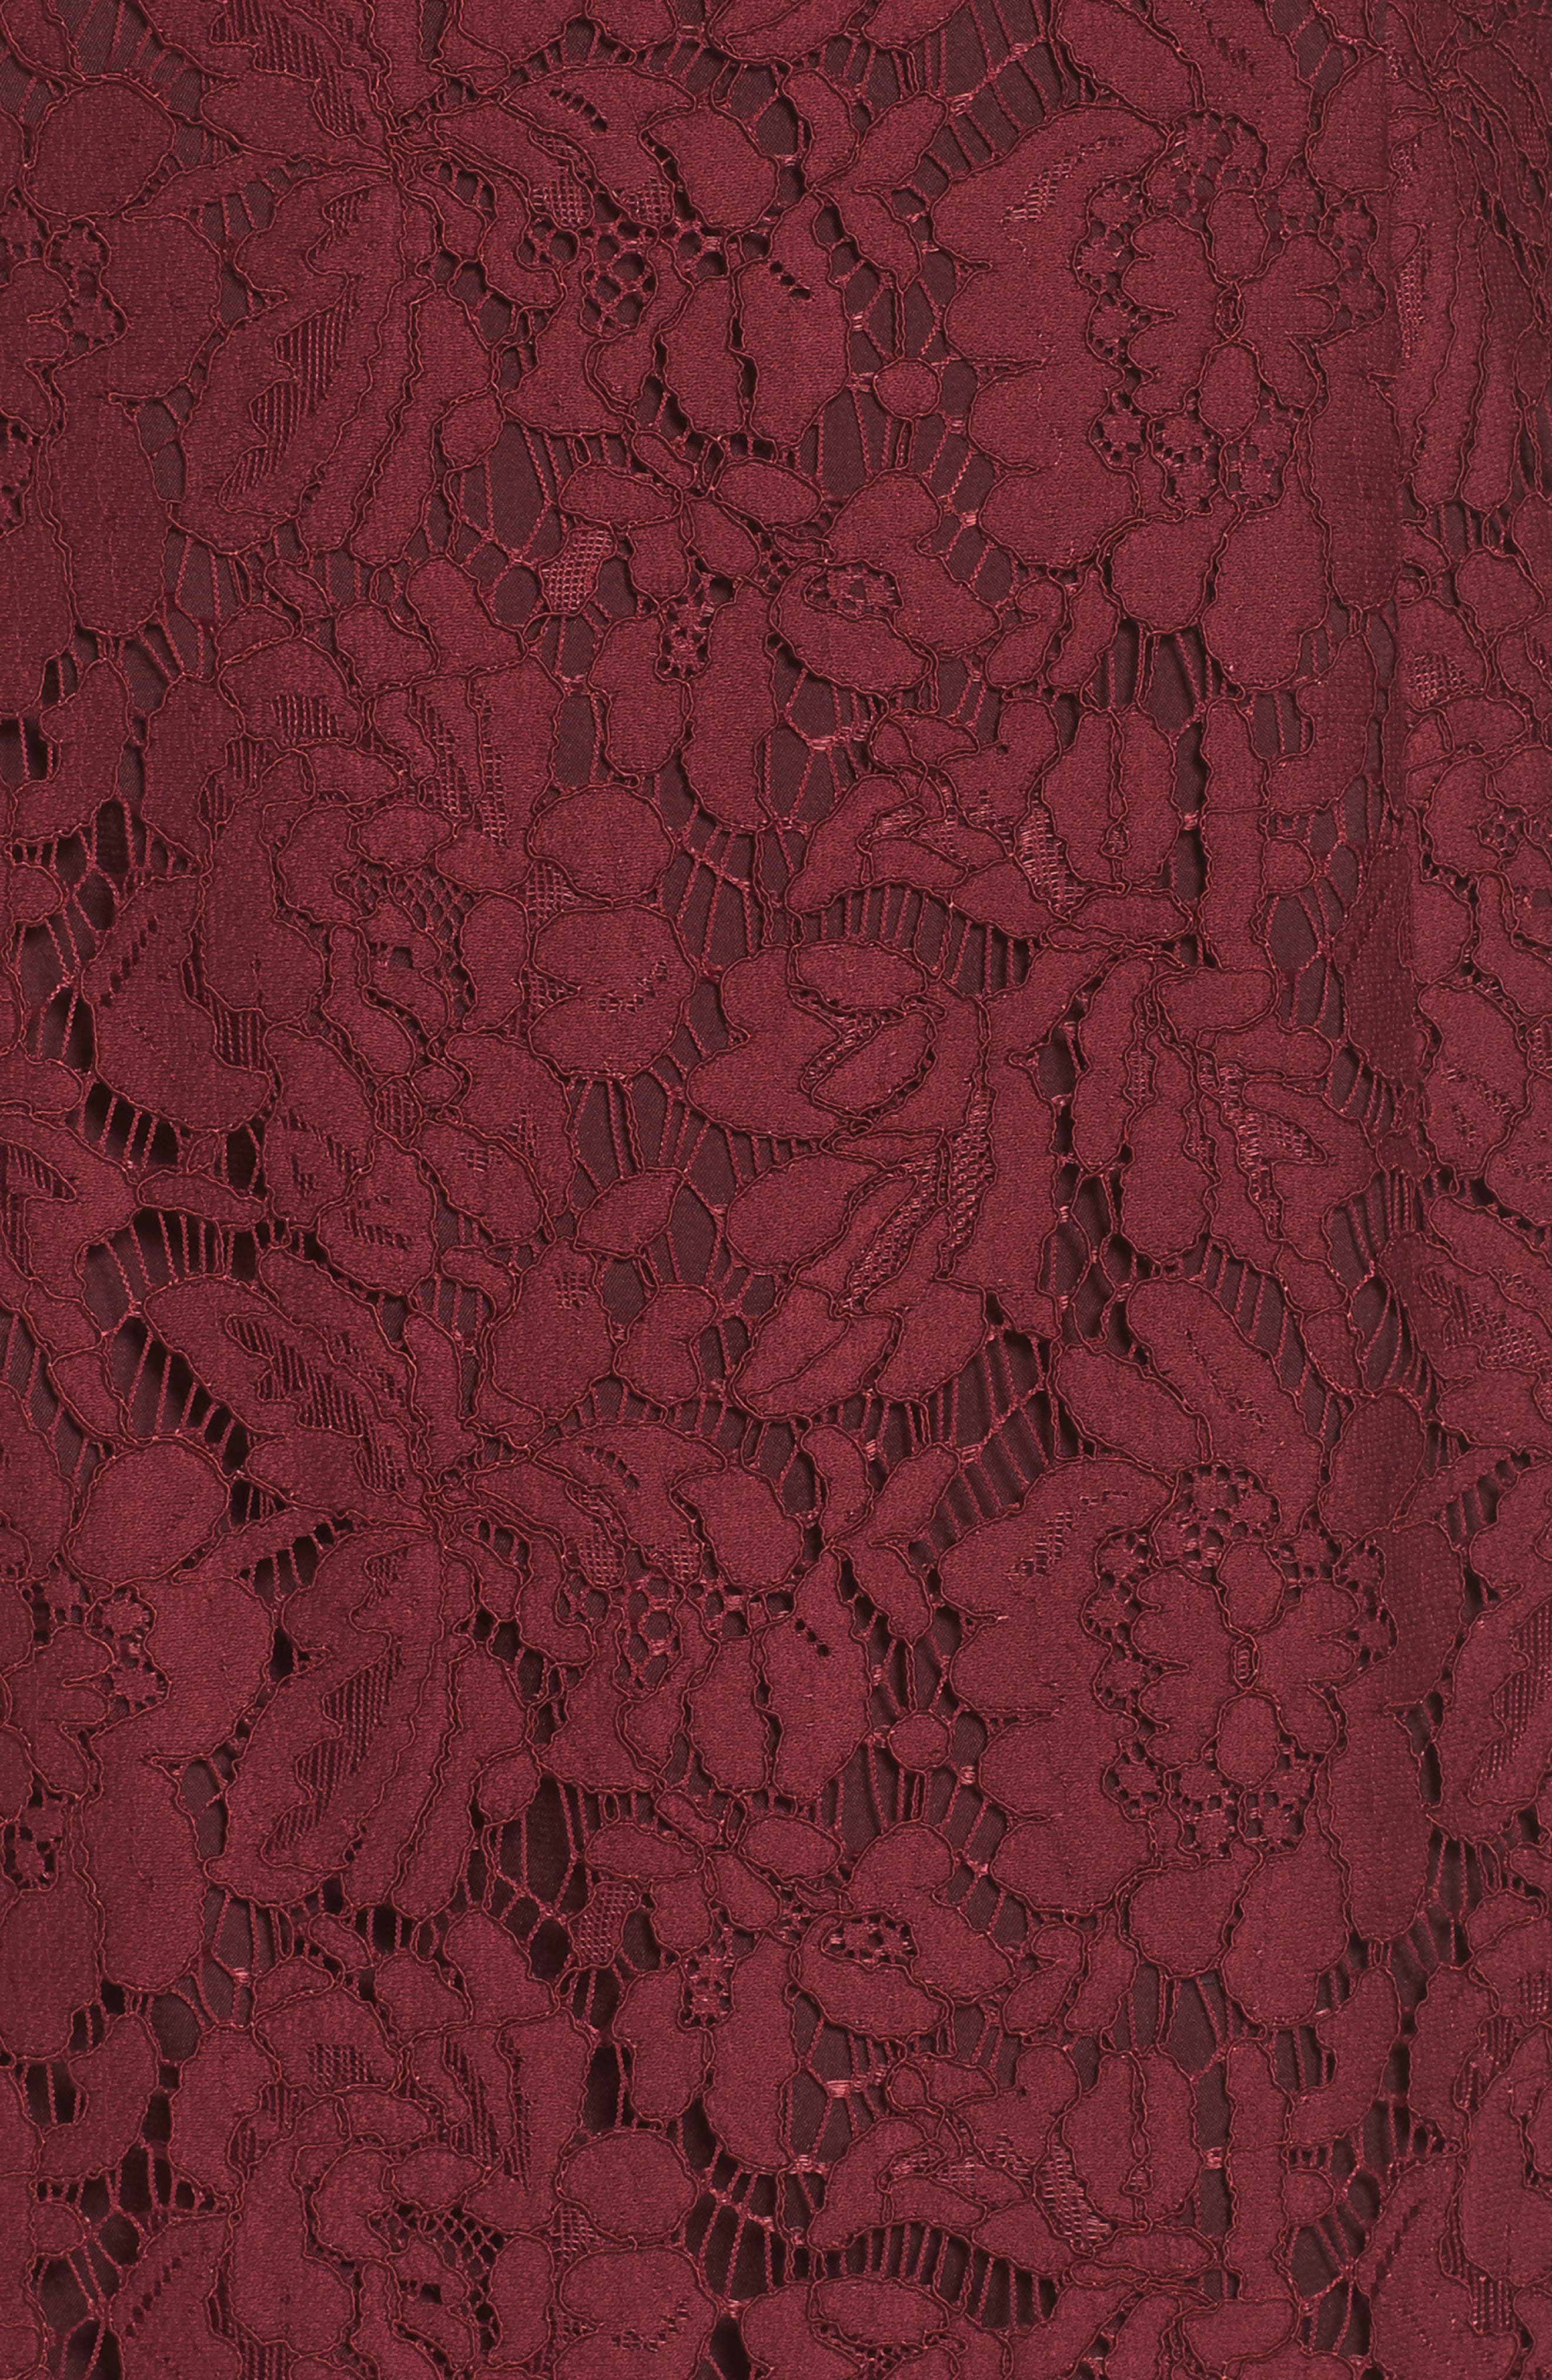 Off the Shoulder Lace Dress,                             Alternate thumbnail 5, color,                             Burgundy London